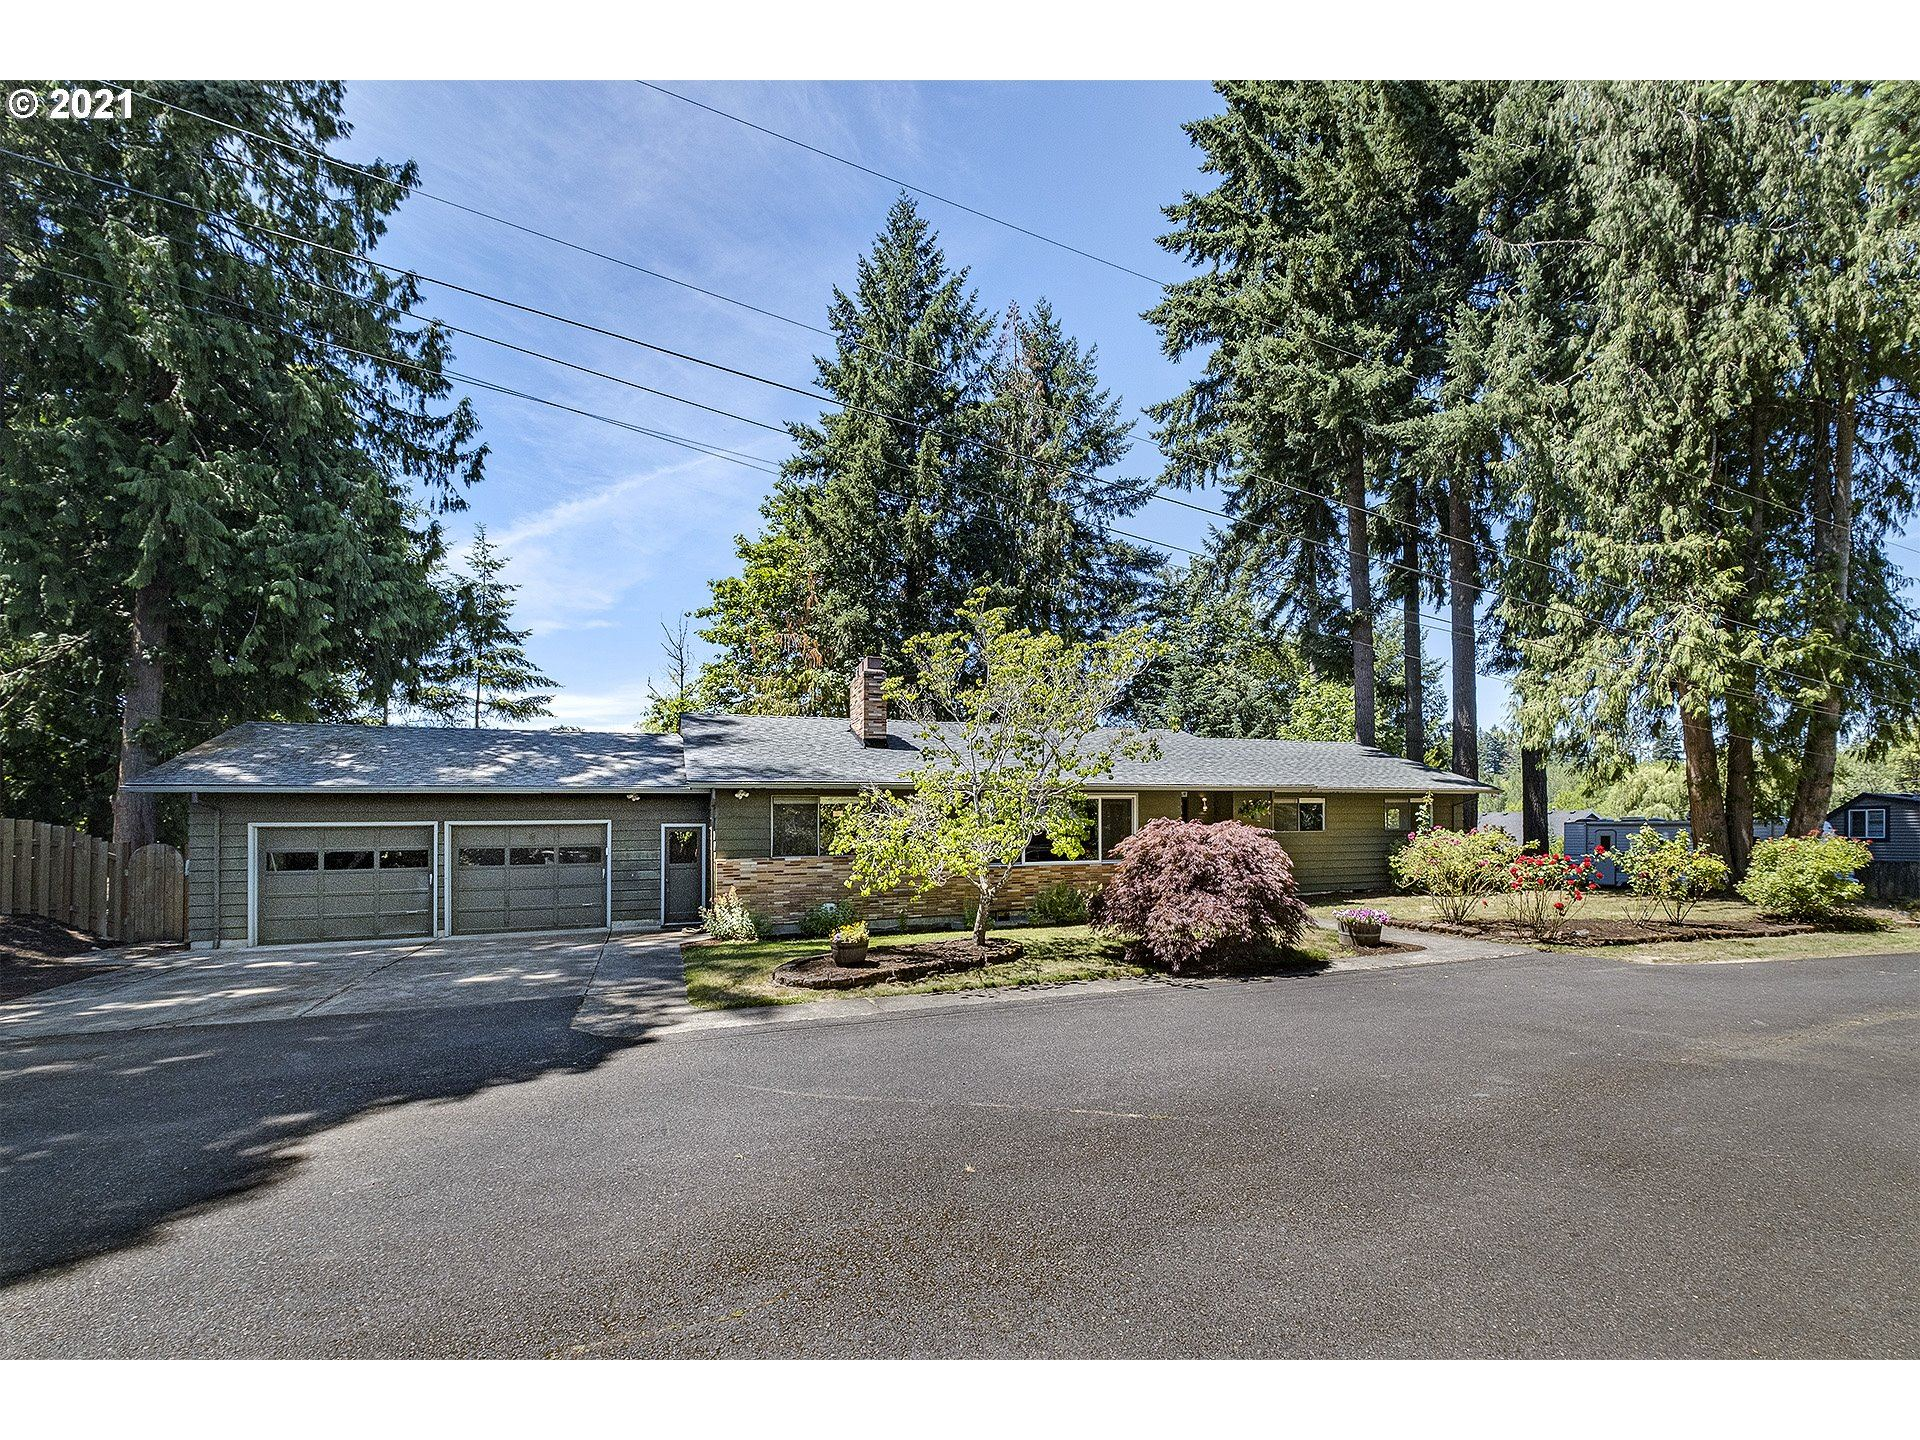 2685 NW 3RD AVE, Hillsboro, OR 97124 - MLS#: 21136219